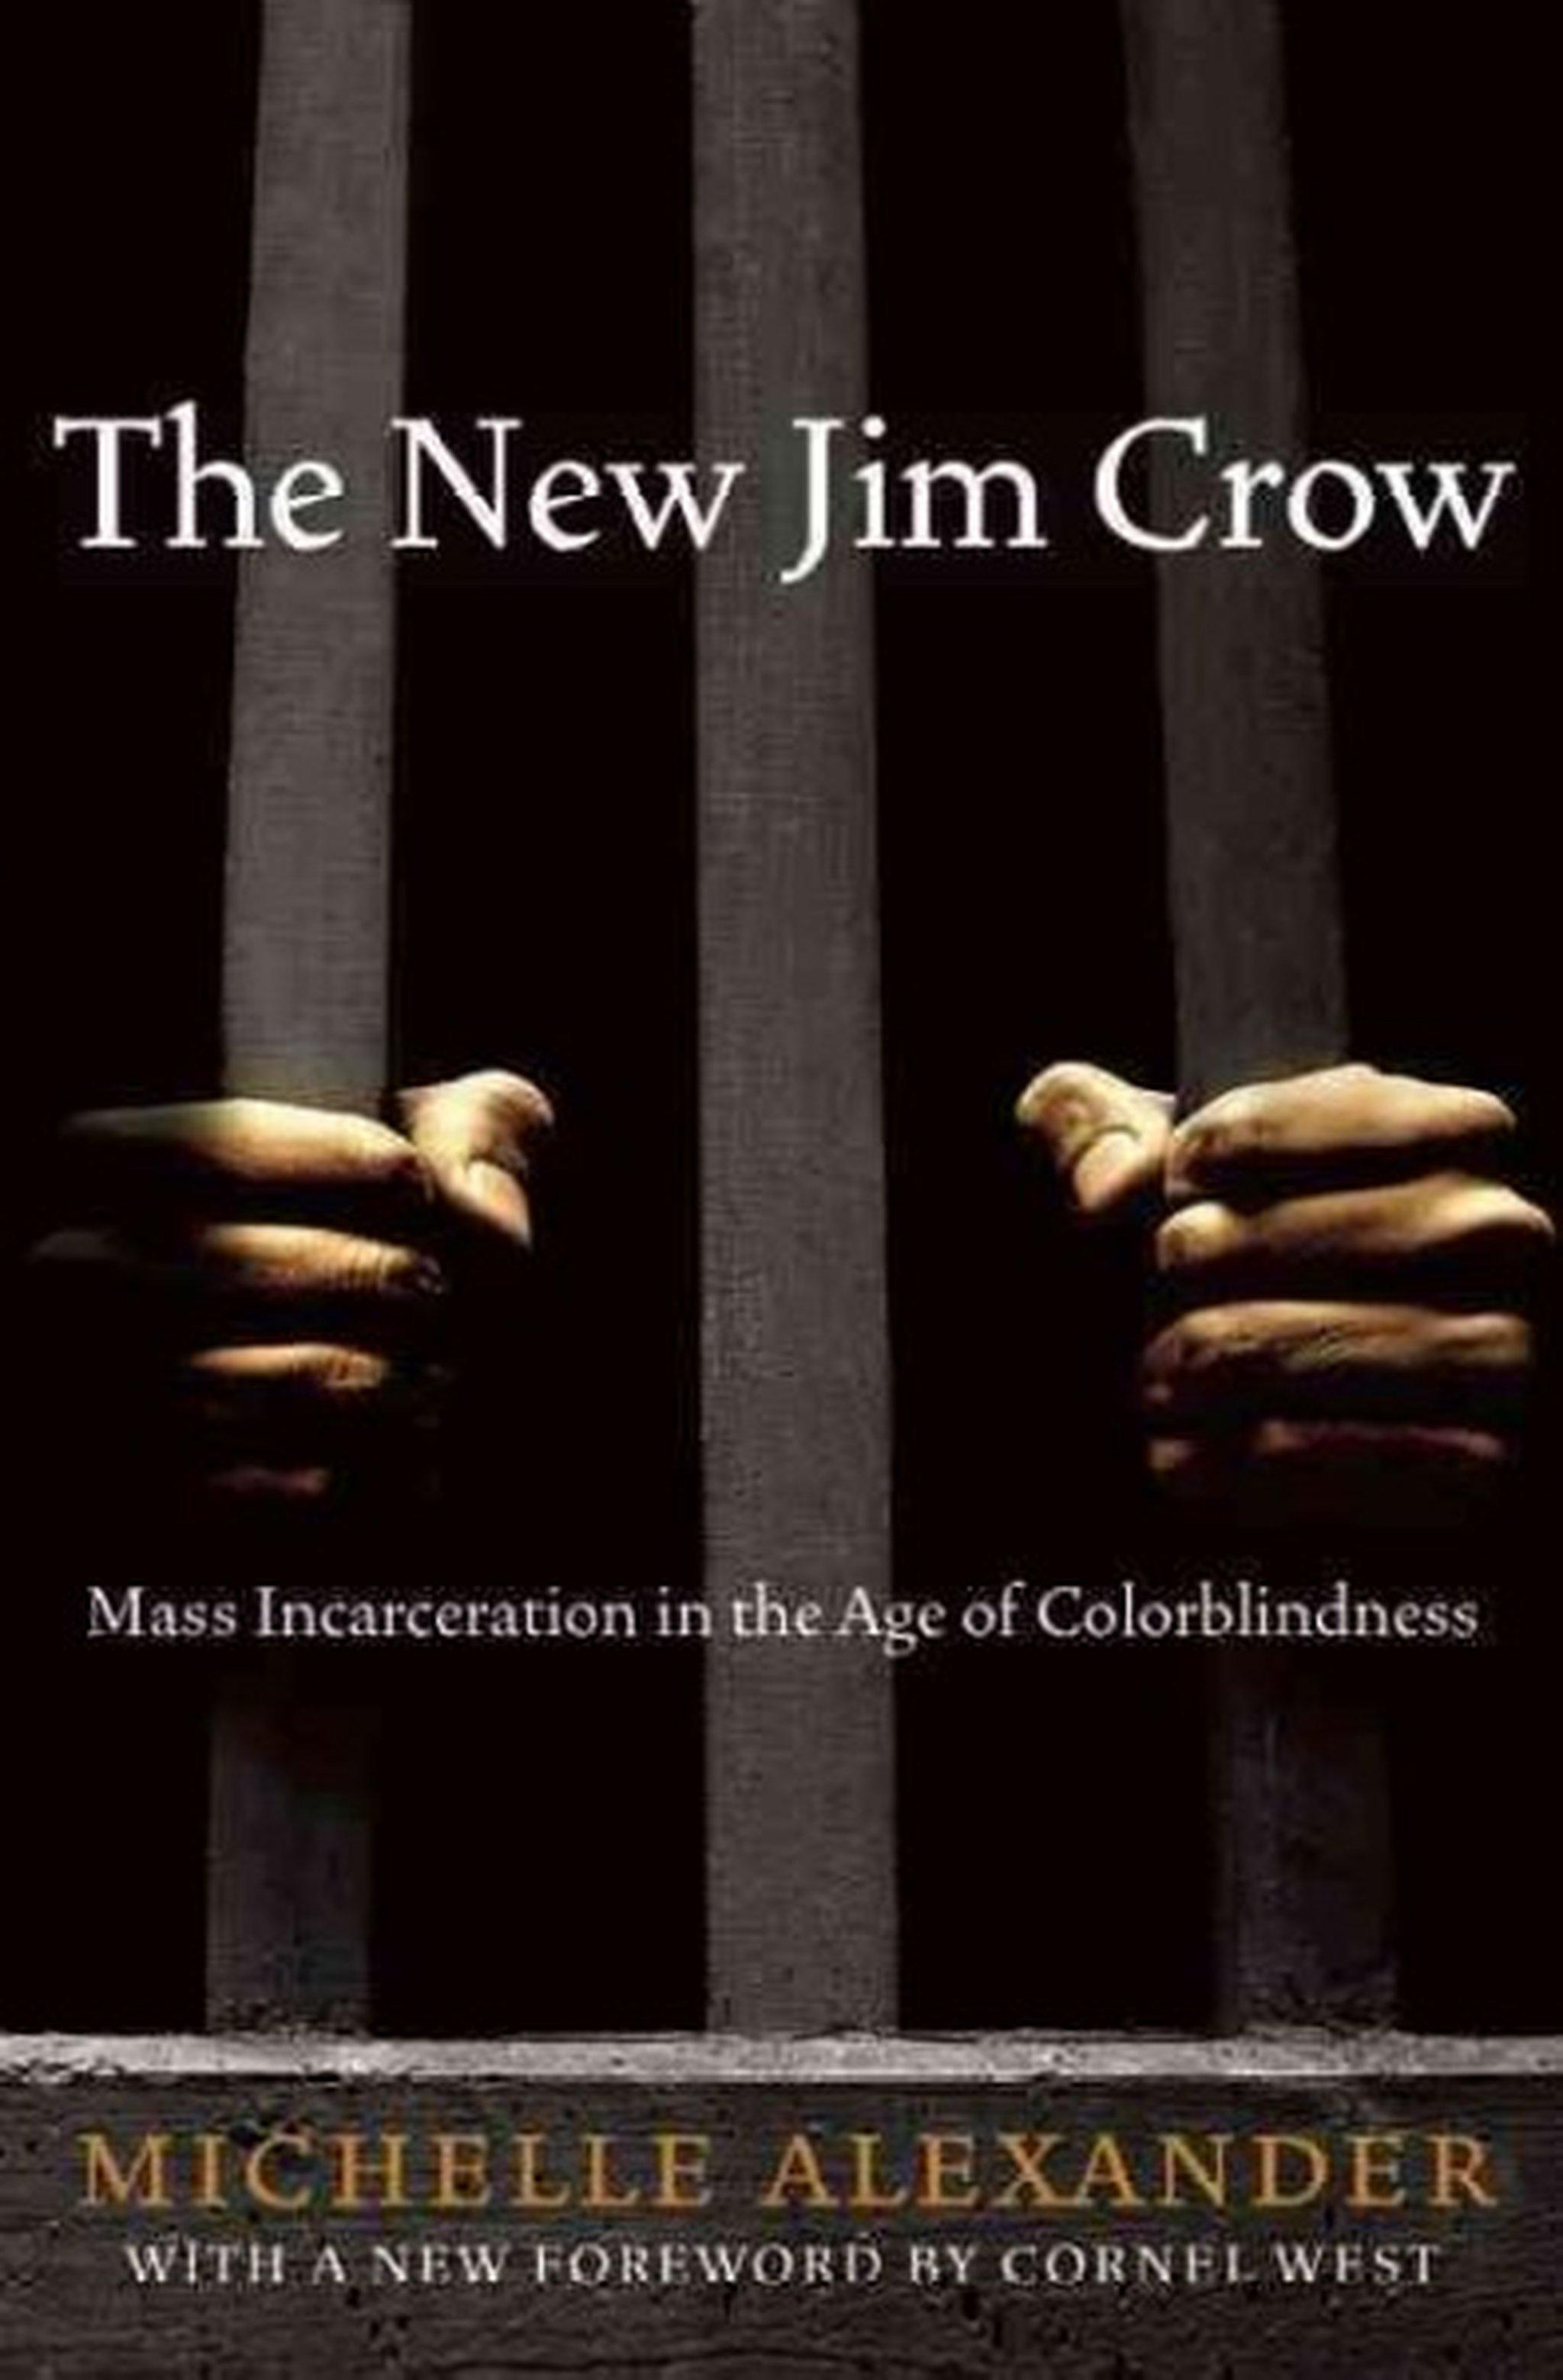 living jim crow The ethics of living jim crow an autobiographical sketch pdf document in the race warriors kit, along with the classic essay which prefigured it, the ethics of living .